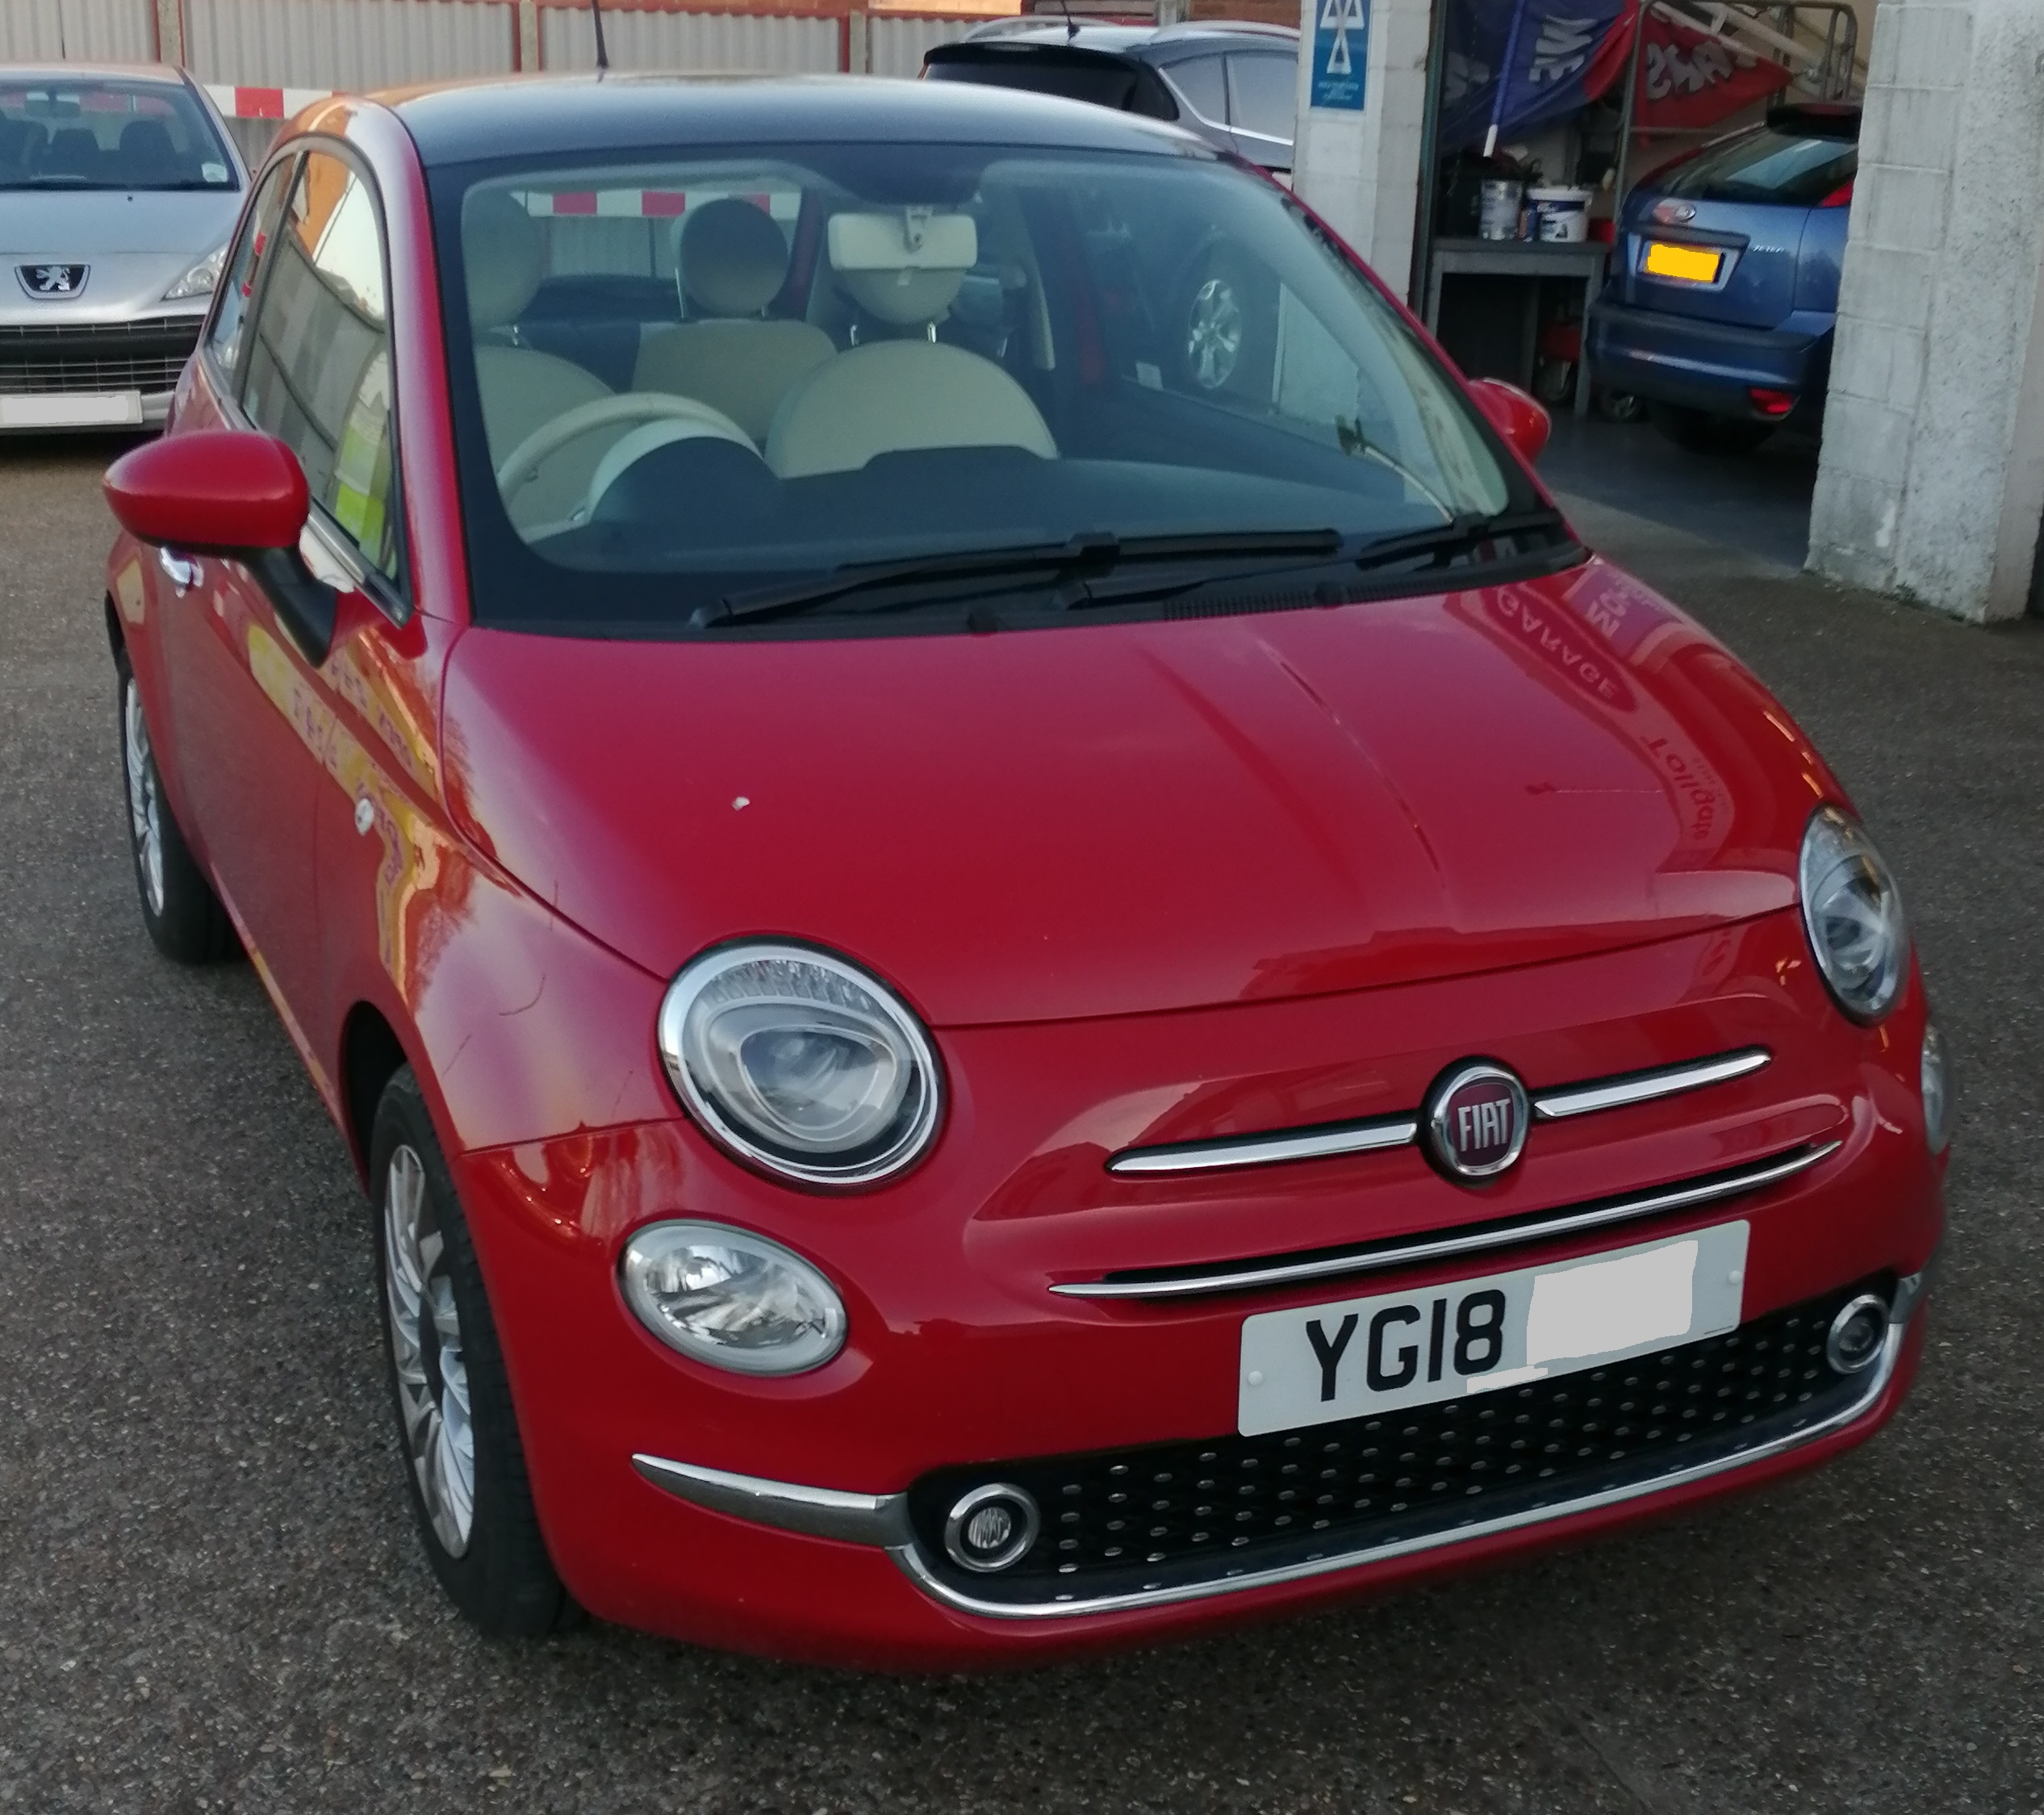 Fiat 500 Lounge 1242cc - Petrol 2018 / 18 *** ONLY 5000 miles *** Full Service History Spare Key *** ONLY £20 per year Road Tax *** £8995  Sat Nav / Glass Roof / Alloy Wheels /  City Mode / Cruise Control /  Touchscreen Media System / Bluetooth / Steering Wheel Controls / TPMS / Stop-Start